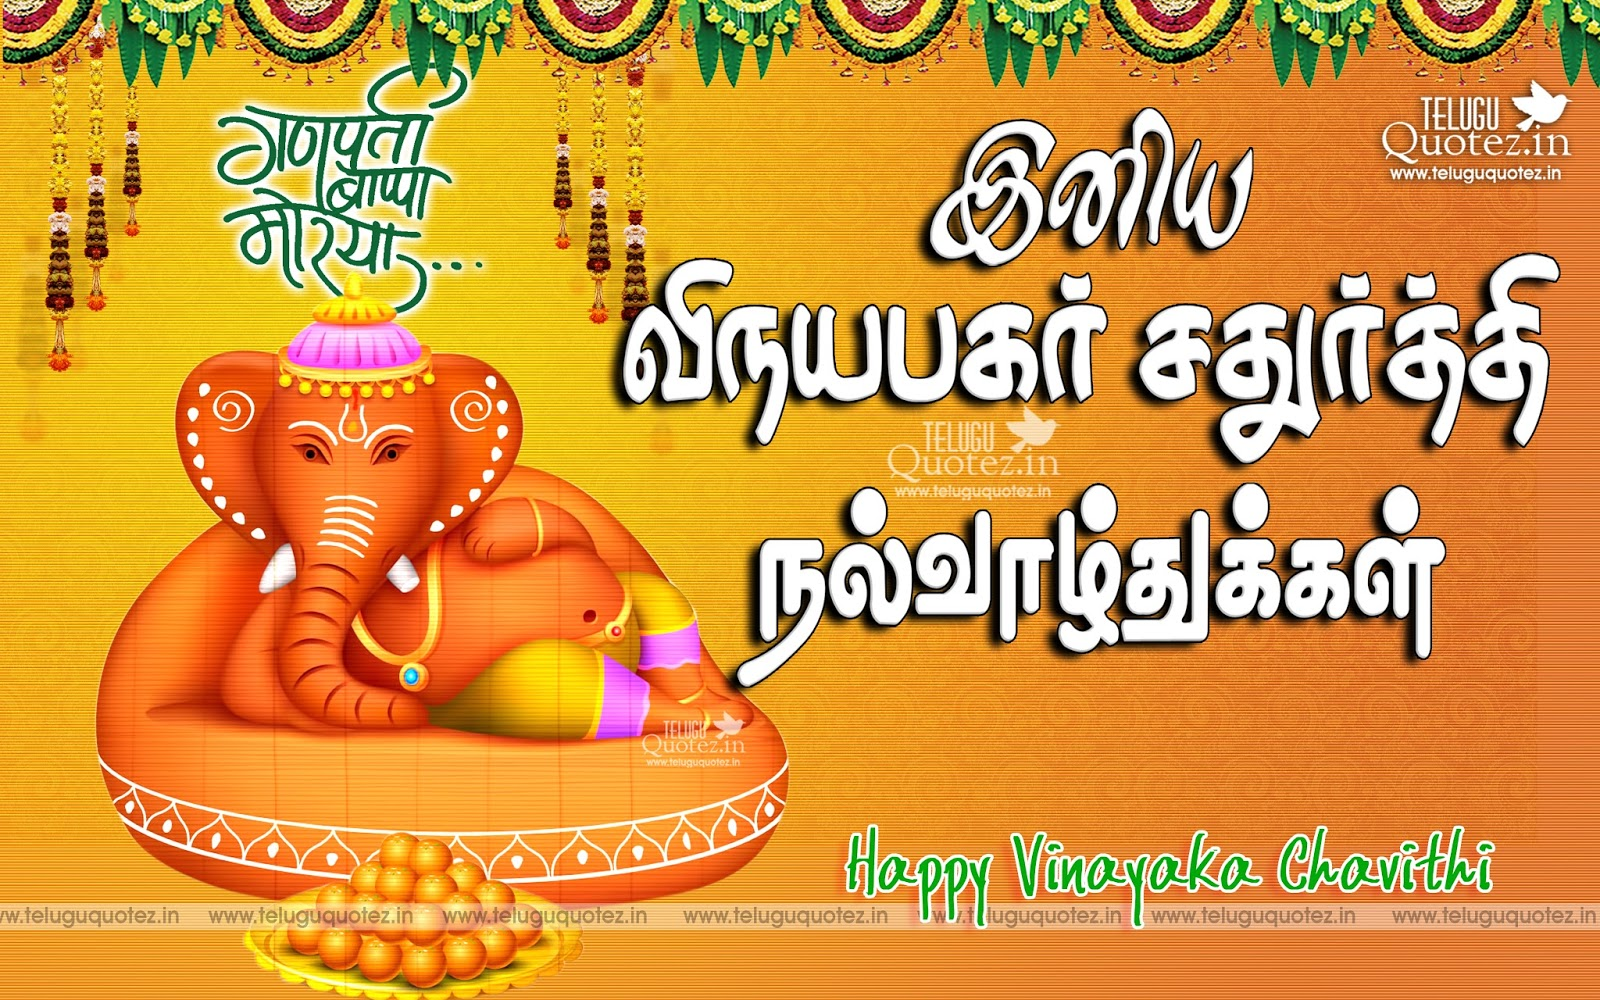 Vinayaka chavithi best tamil wishes quotes and greetings happy vinayaka chavithi tamil quotes greetings and wishes m4hsunfo